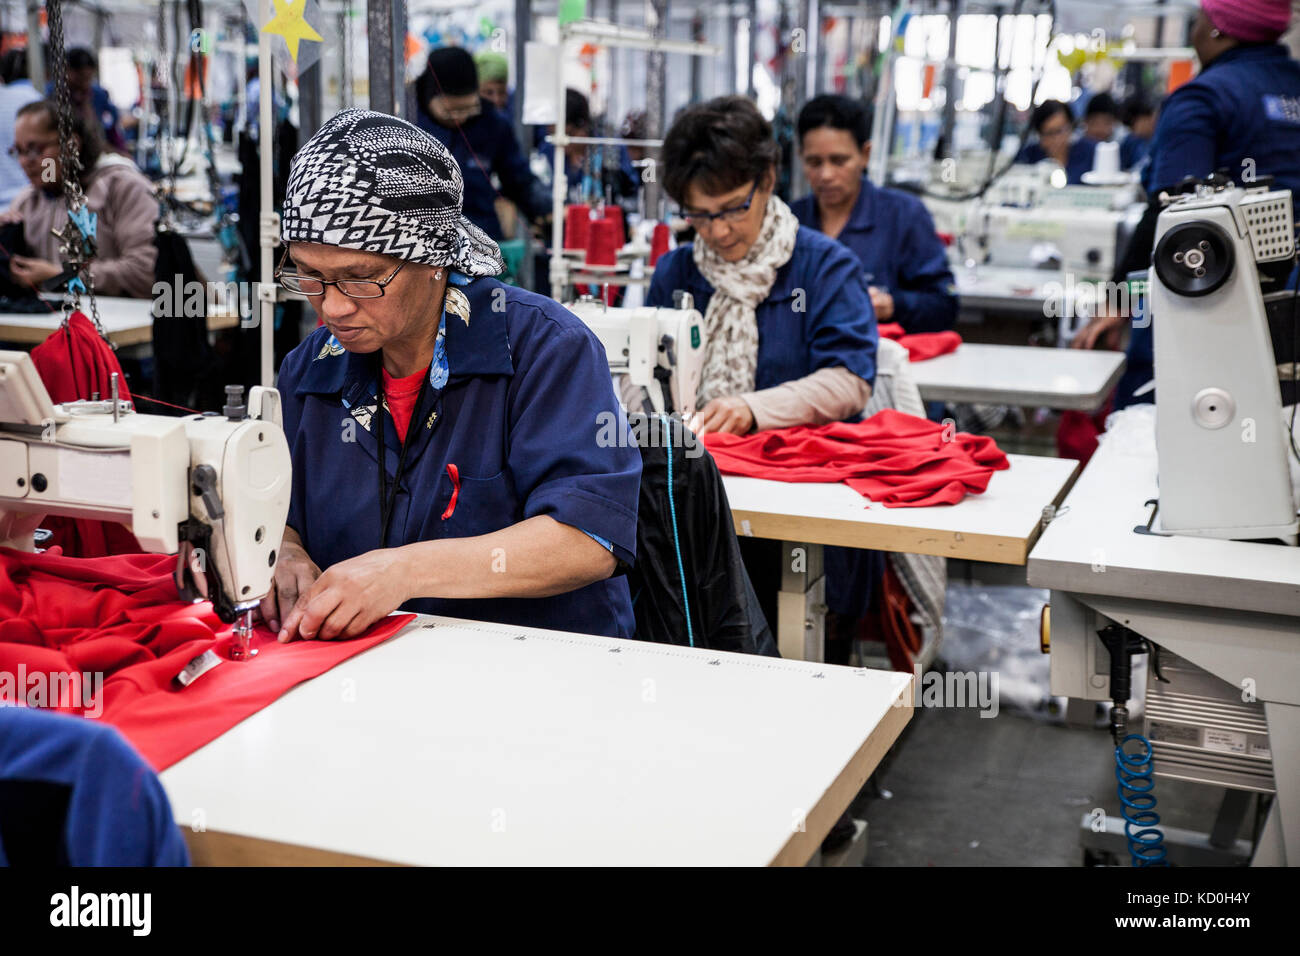 Seamstresses working in factory, Cape Town, South Africa - Stock Image